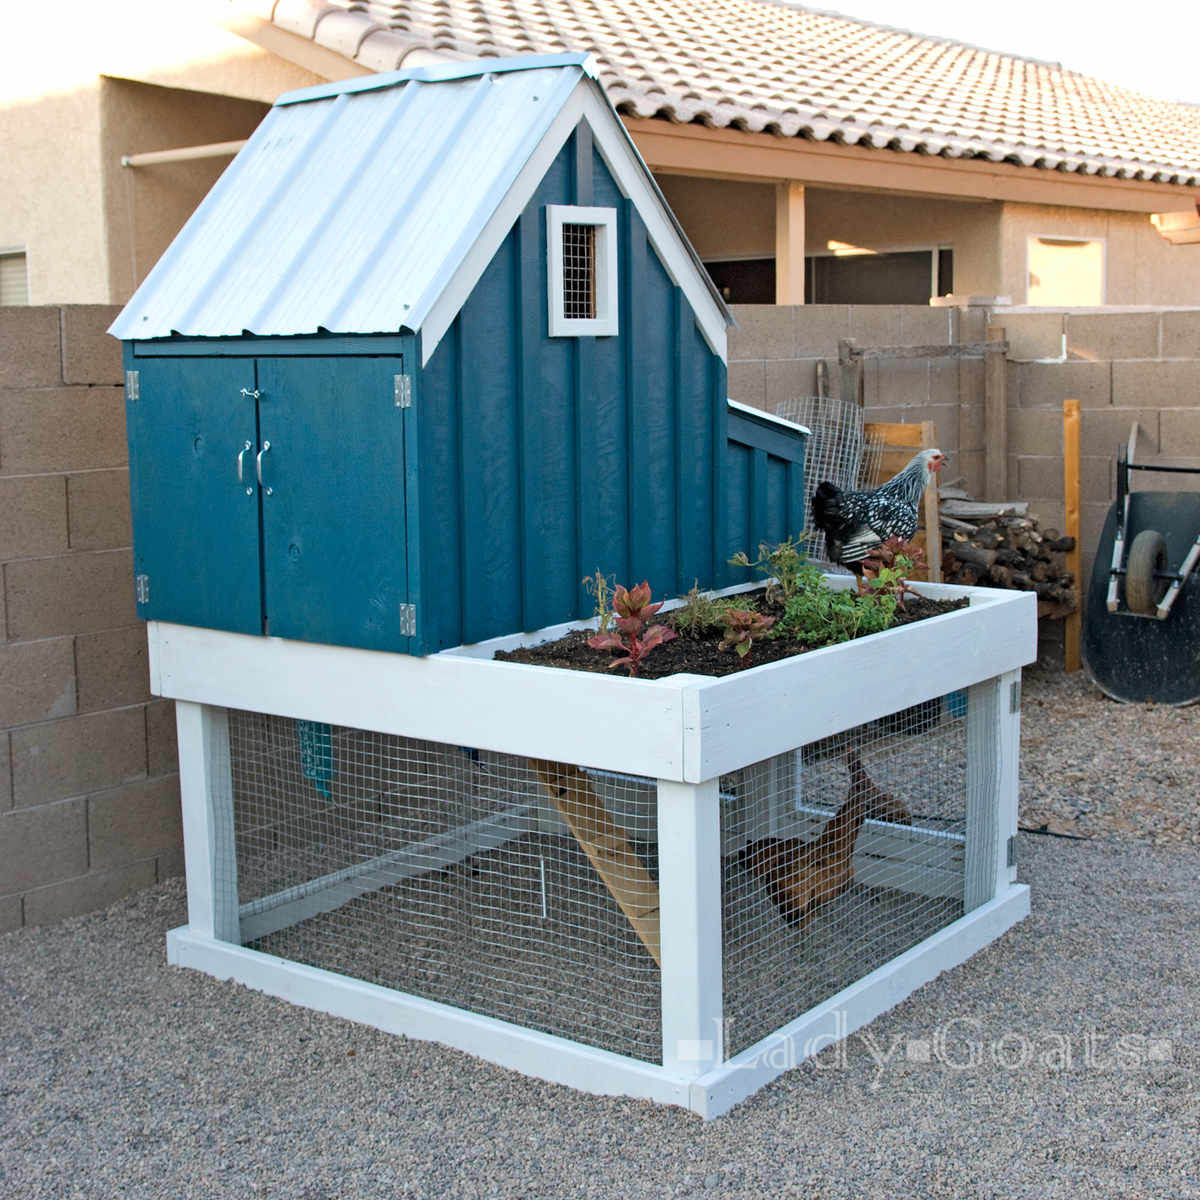 chicken coop teal with chickens